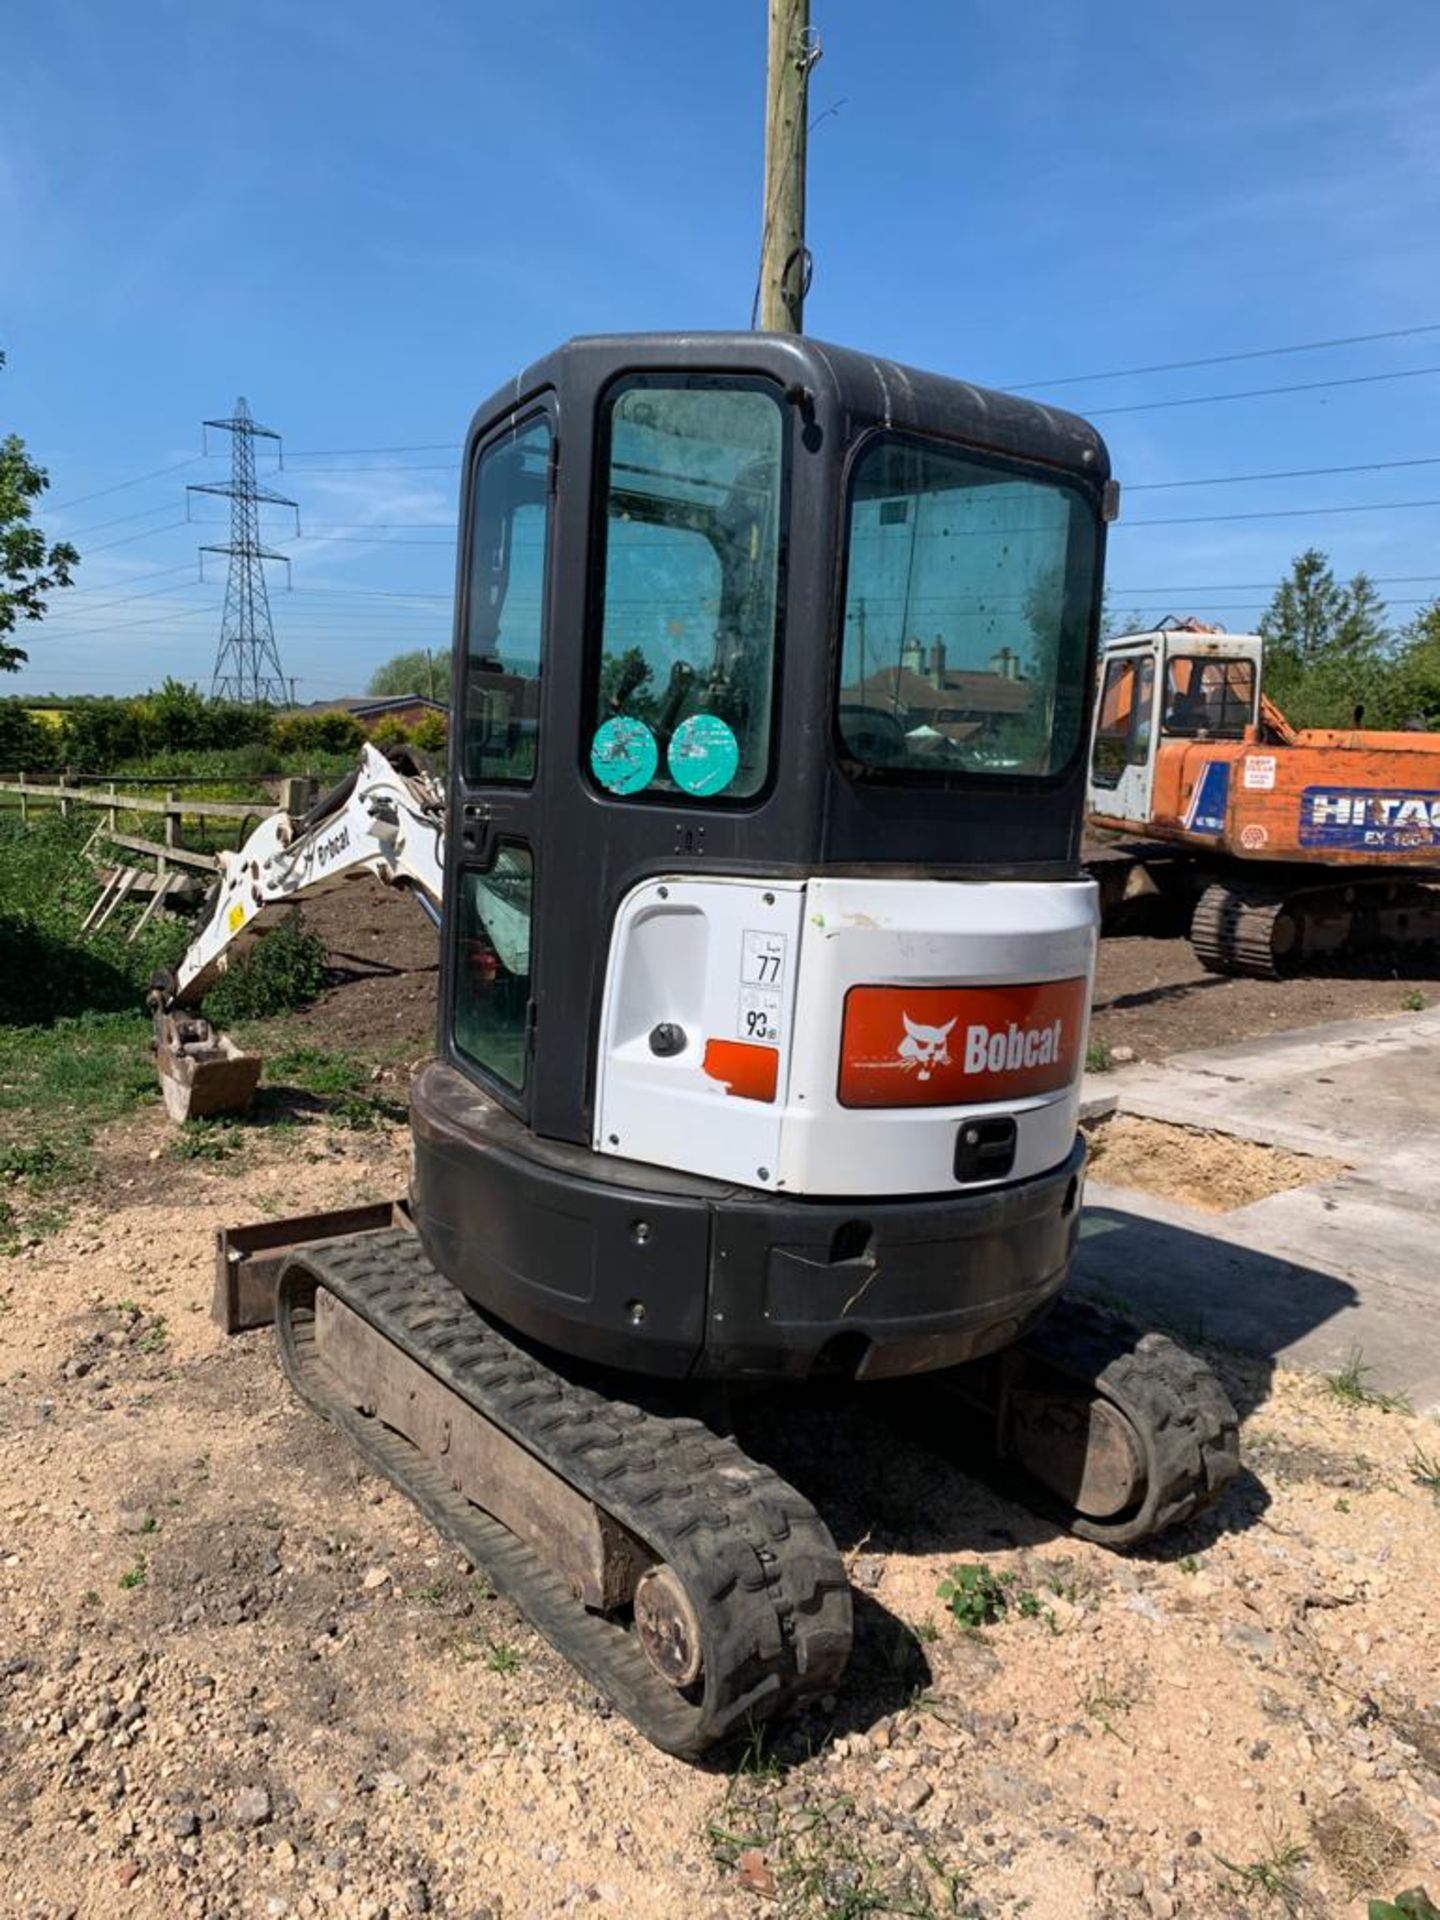 2014 BOBCAT E25 RUBBER TRACKED COMPACT EXCAVATOR / DIGGER, 15.3 KW, MASS 2516 KG *PLUS VAT* - Image 4 of 19